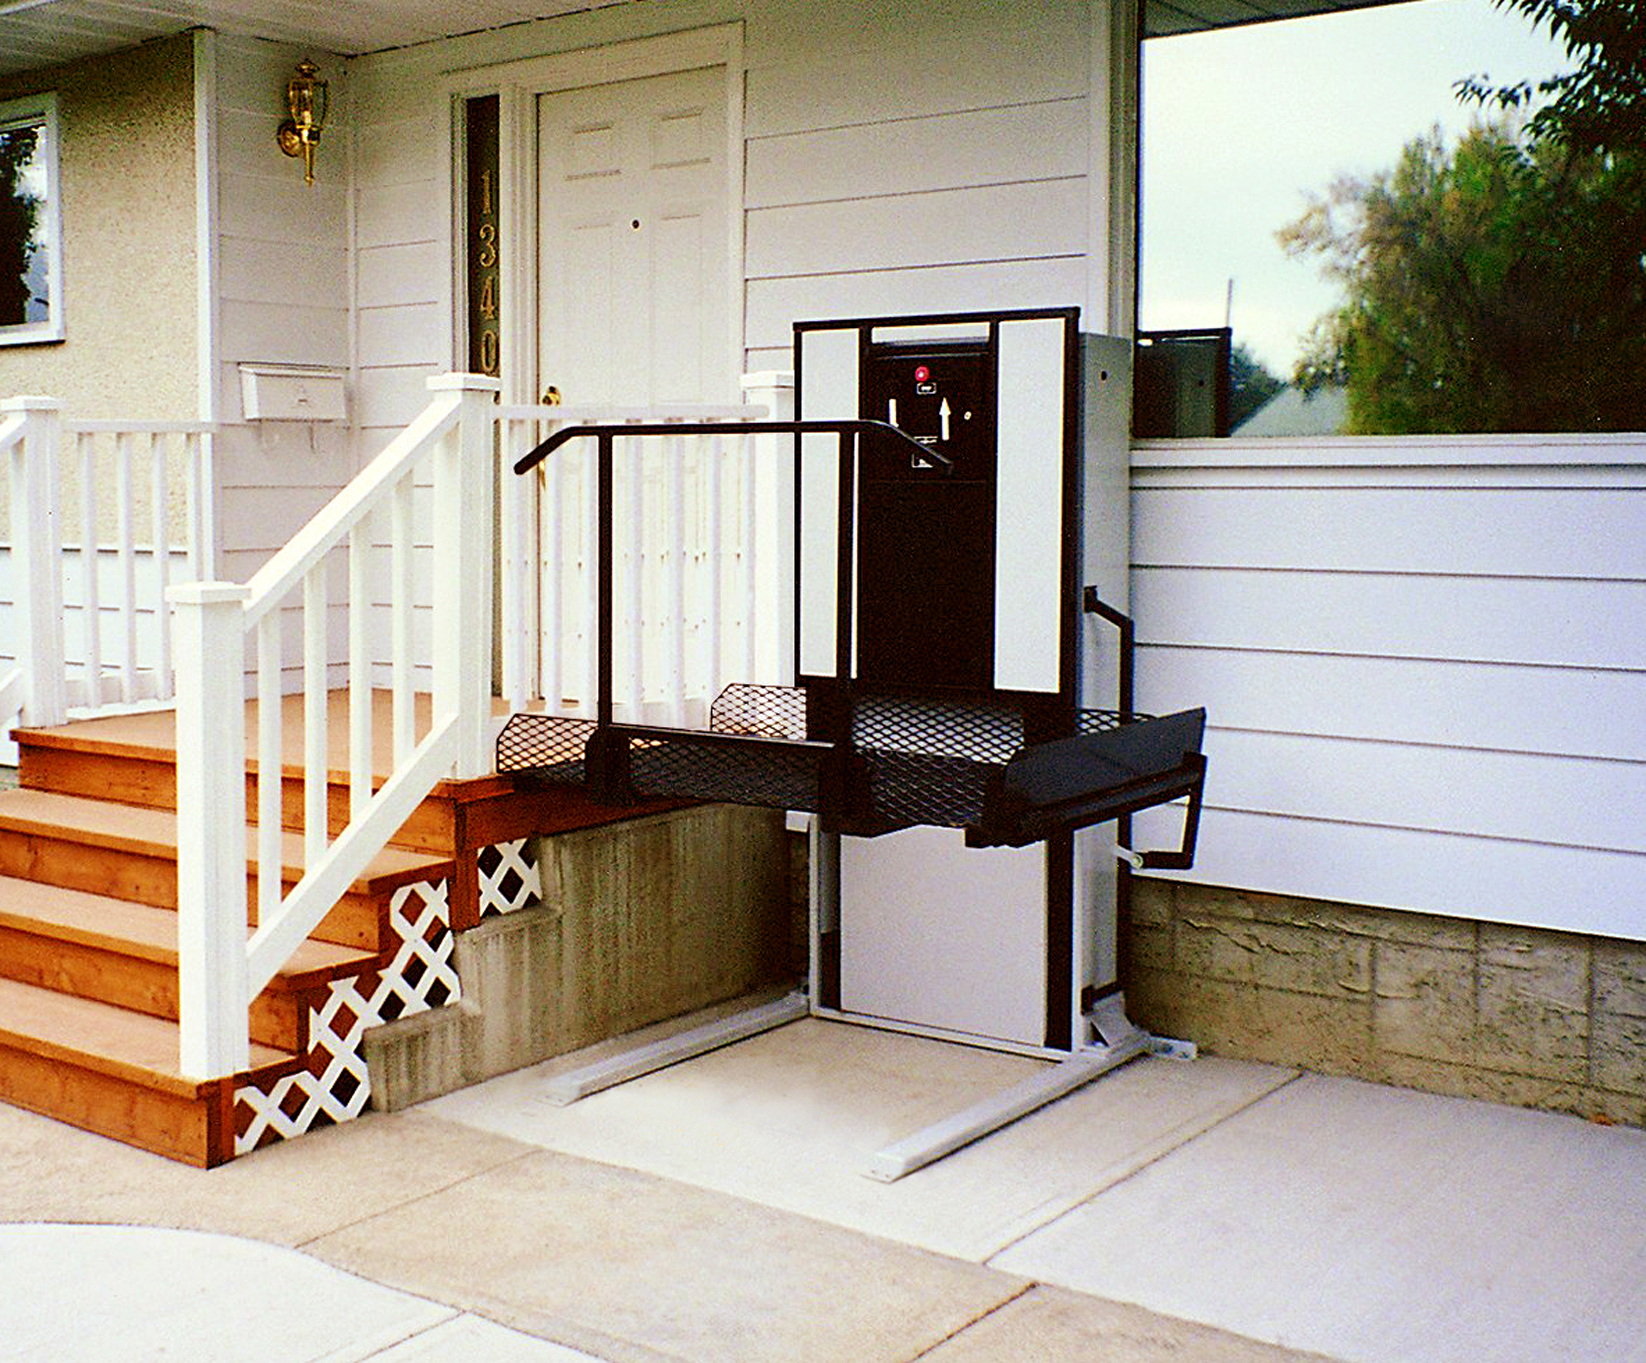 Mobile Home Porches | Mobile Home Porch Designs | Front Porches for Mobile Homes